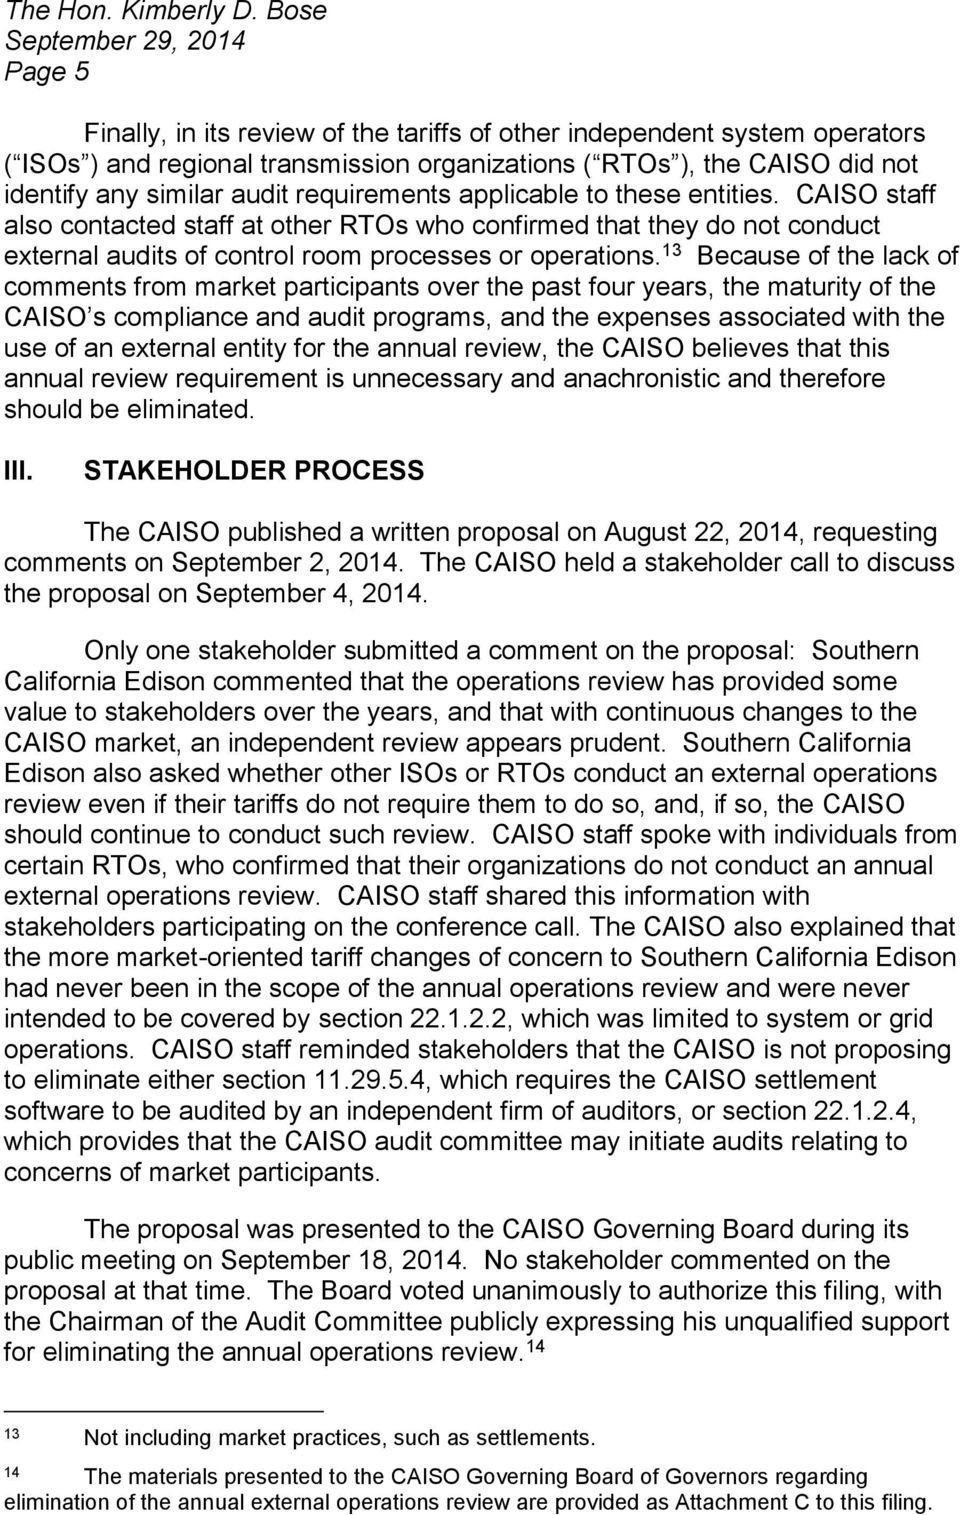 similar audit requirements applicable to these entities. CAISO staff also contacted staff at other RTOs who confirmed that they do not conduct external audits of control room processes or operations.